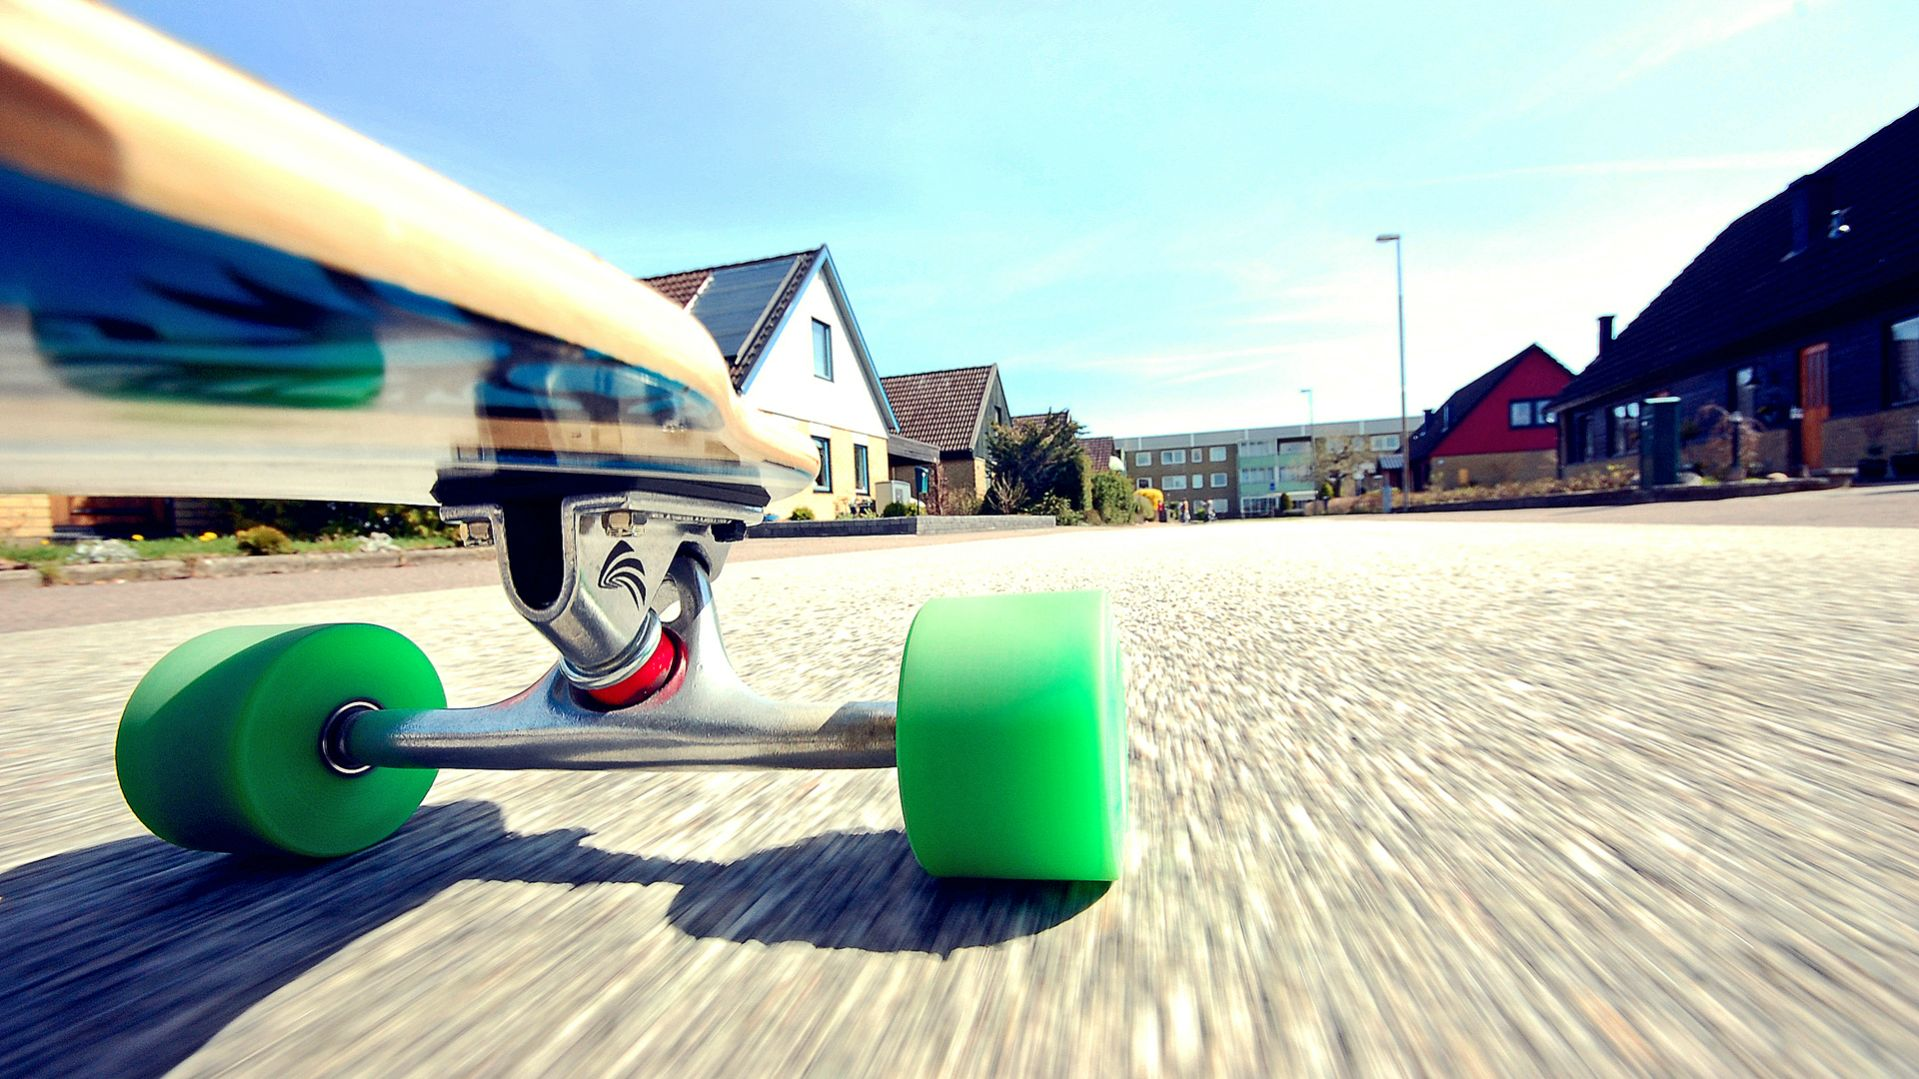 Wide HD Cool Longboard Wallpaper FLGX HD 24391 KB 1919x1079